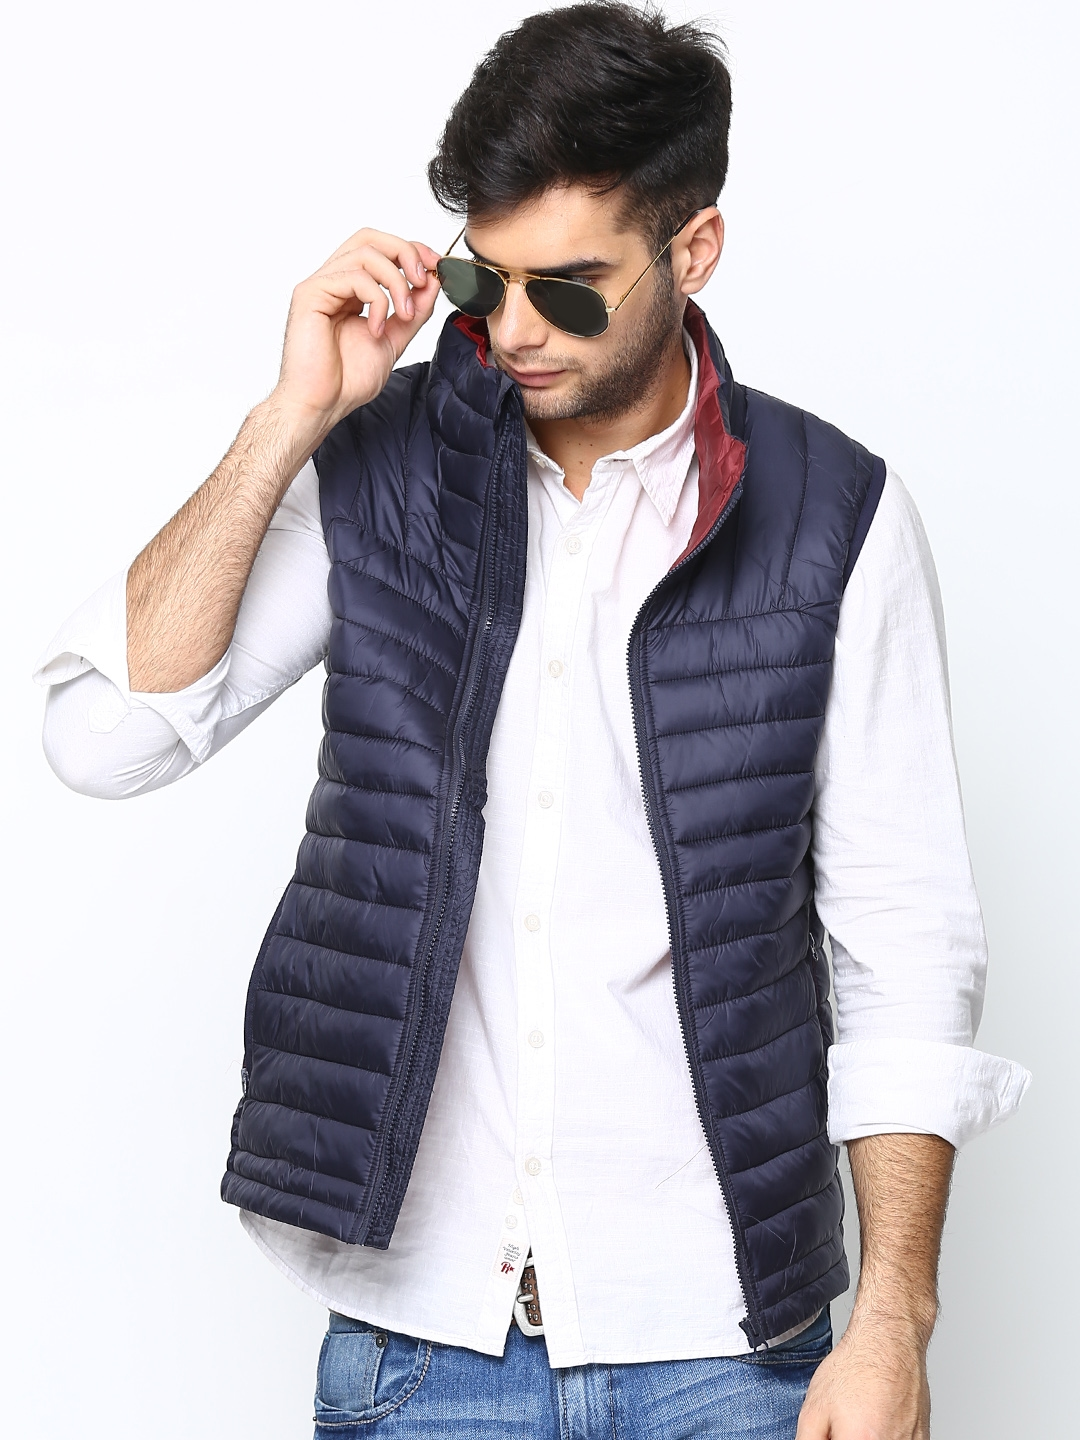 9f341fa2043b5 Buy United Colors Of Benetton Men Navy Sleeveless Jacket - Jackets ...